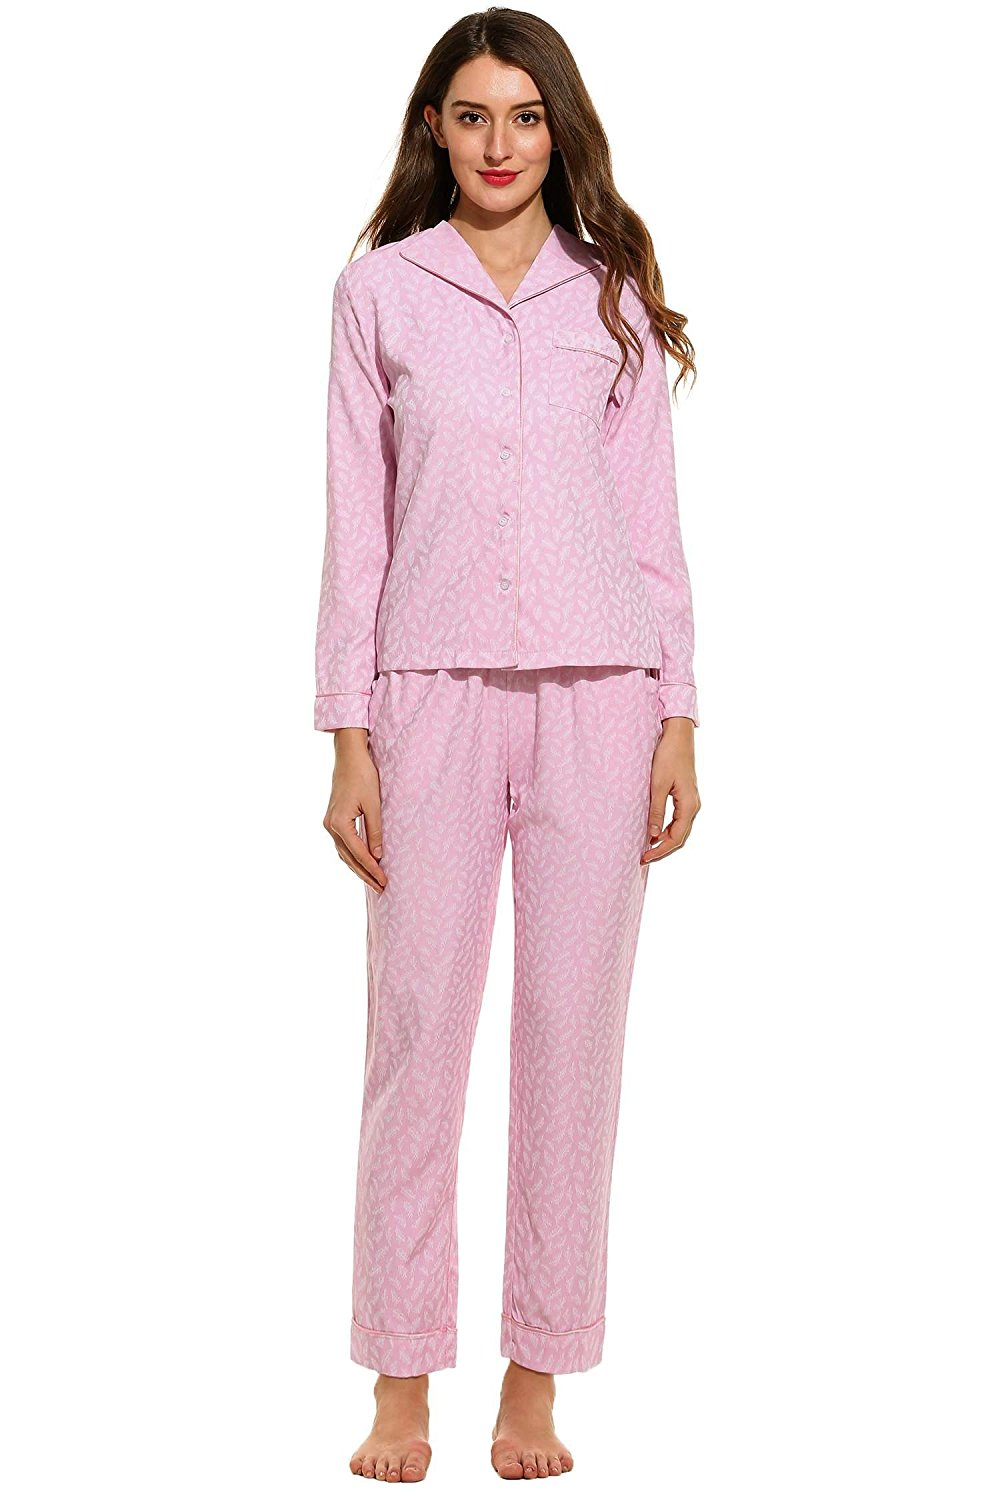 5ea9b60096 Get Quotations · PEATAO Cotton Pajama Sets Pajama Sets for Women Plus Size Pajama  Sets for Women Summer Sets